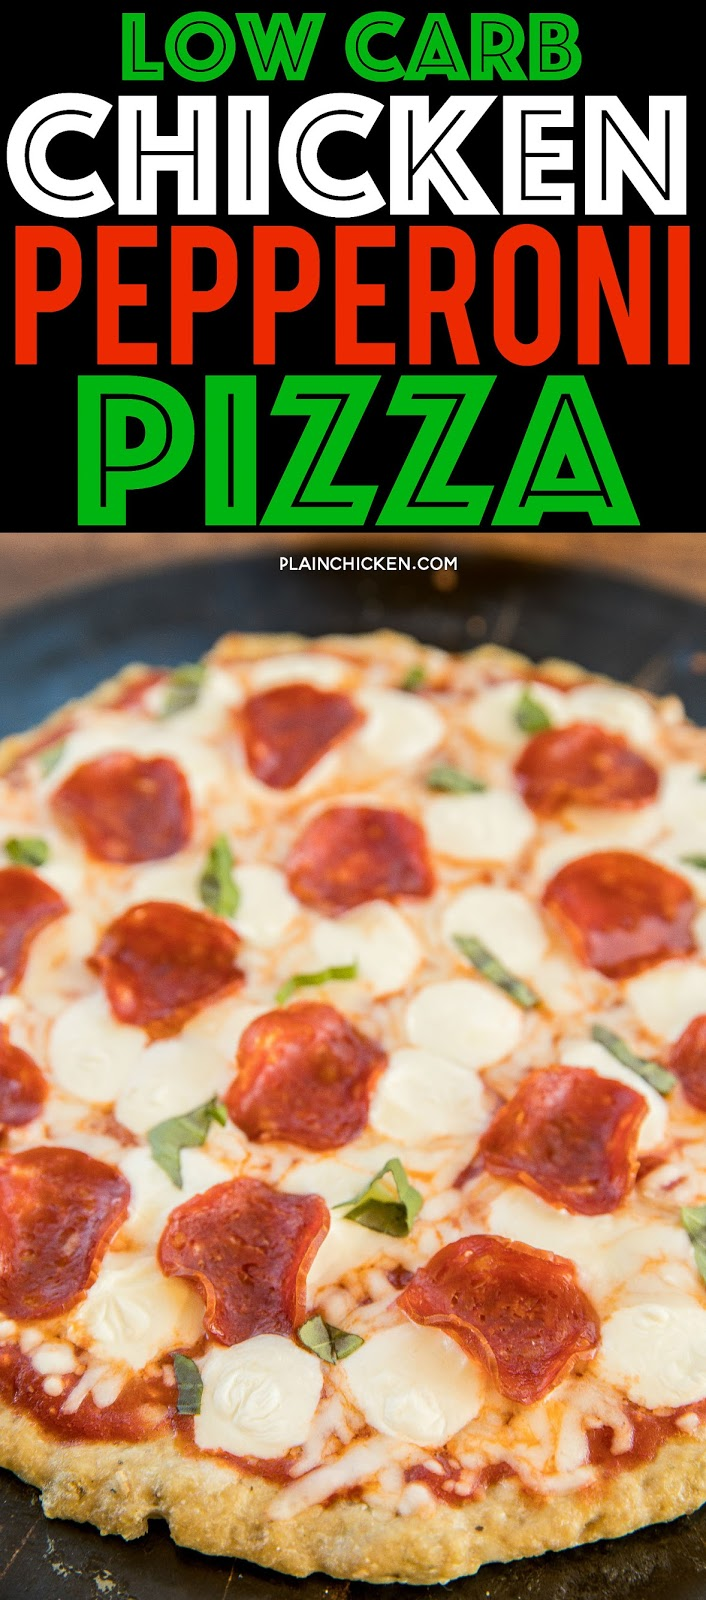 Low-Carb Chicken Pepperoni Pizza - CRAZY good!! All the flavor and none of the fat and carbs. The crust is made of ground chicken - sounds weird, but it is SO good! Ground chicken, parmesan, Italian seasoning, mozzarella, pizza sauce and pepperoni. We make this all the time. All the flavors of pizza without all the guilt! #pizza #lowcarb #chicken